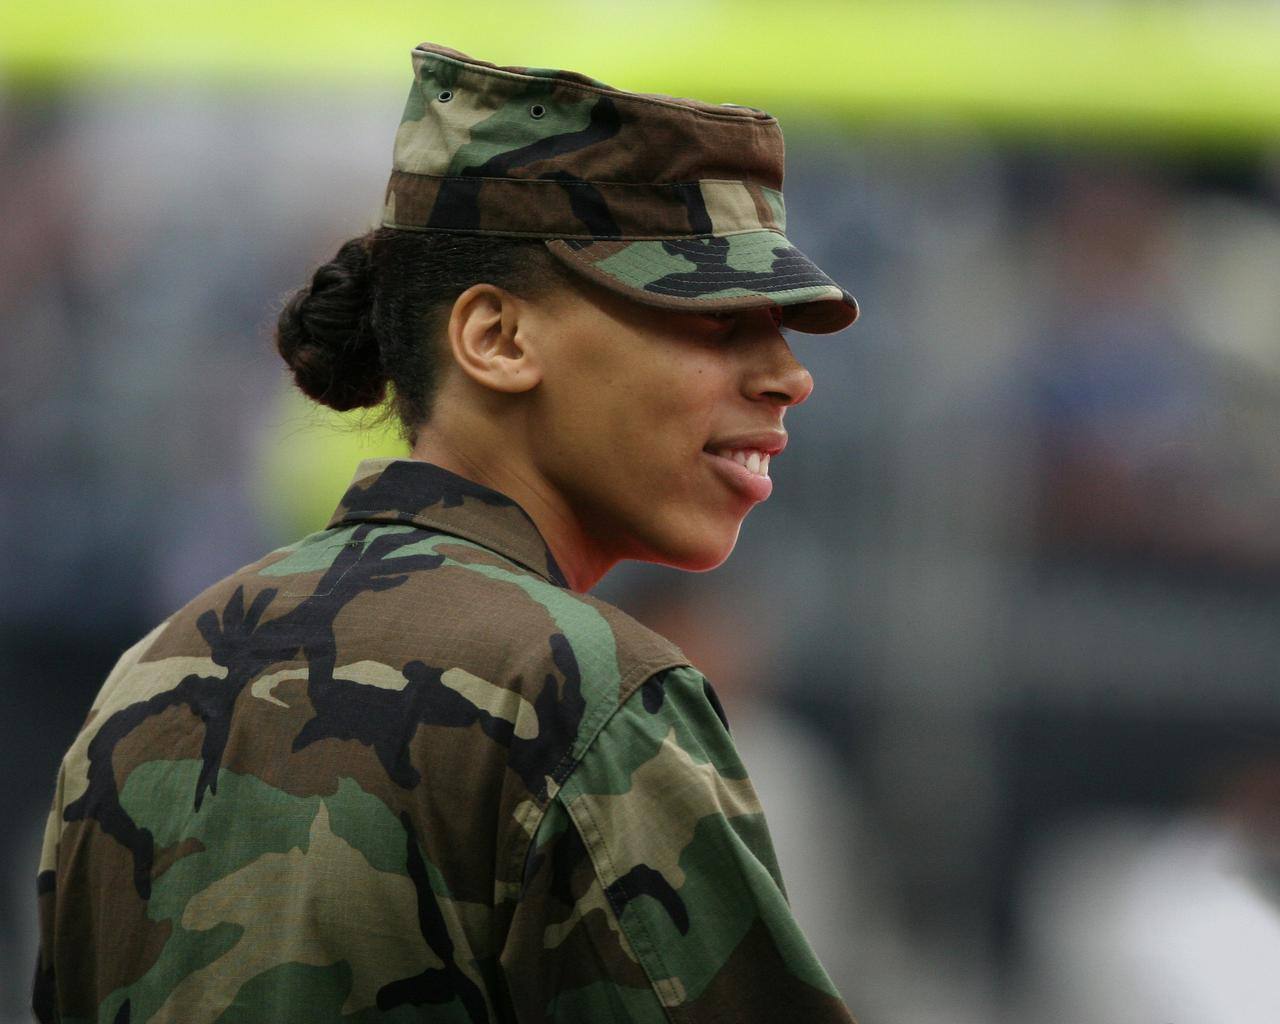 Woman veteran supported by military women nonprofits.